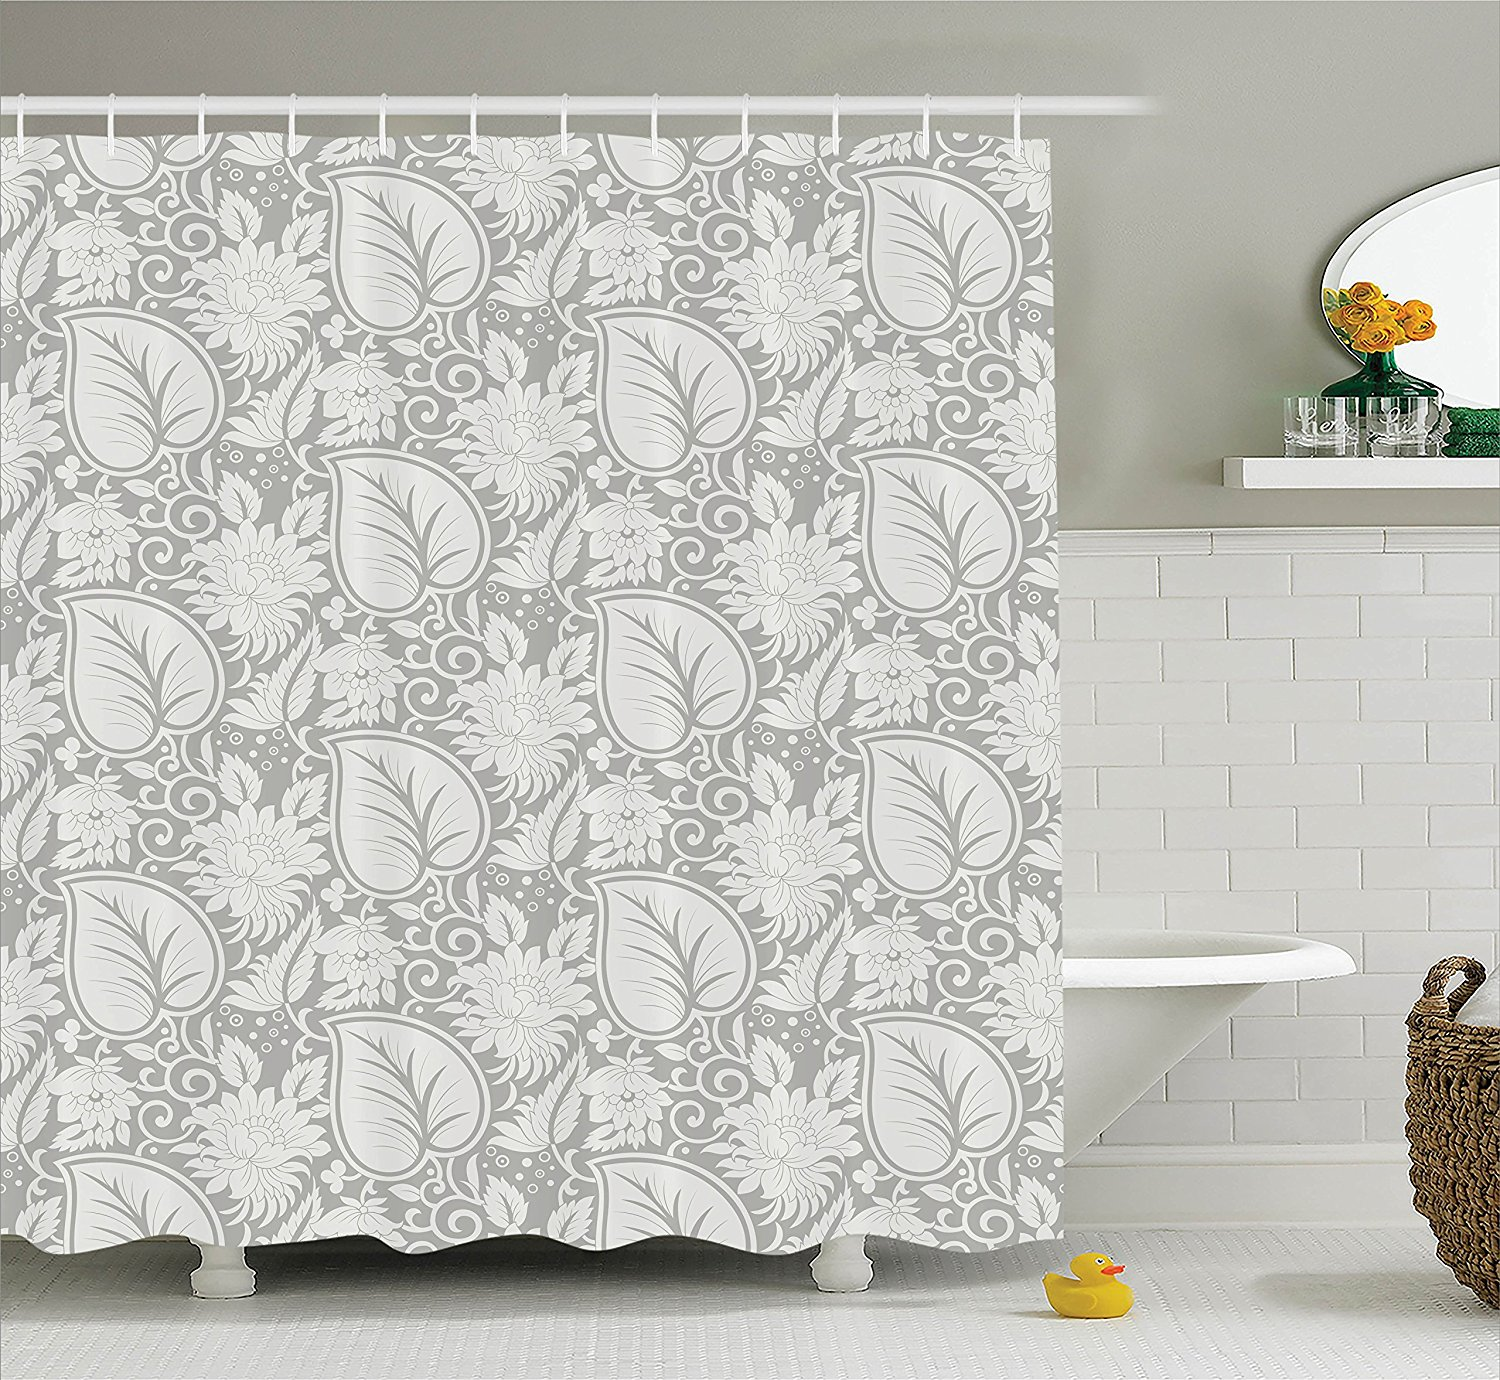 Grey Shower Curtain Big Leaves On Old Fashion Floral ...